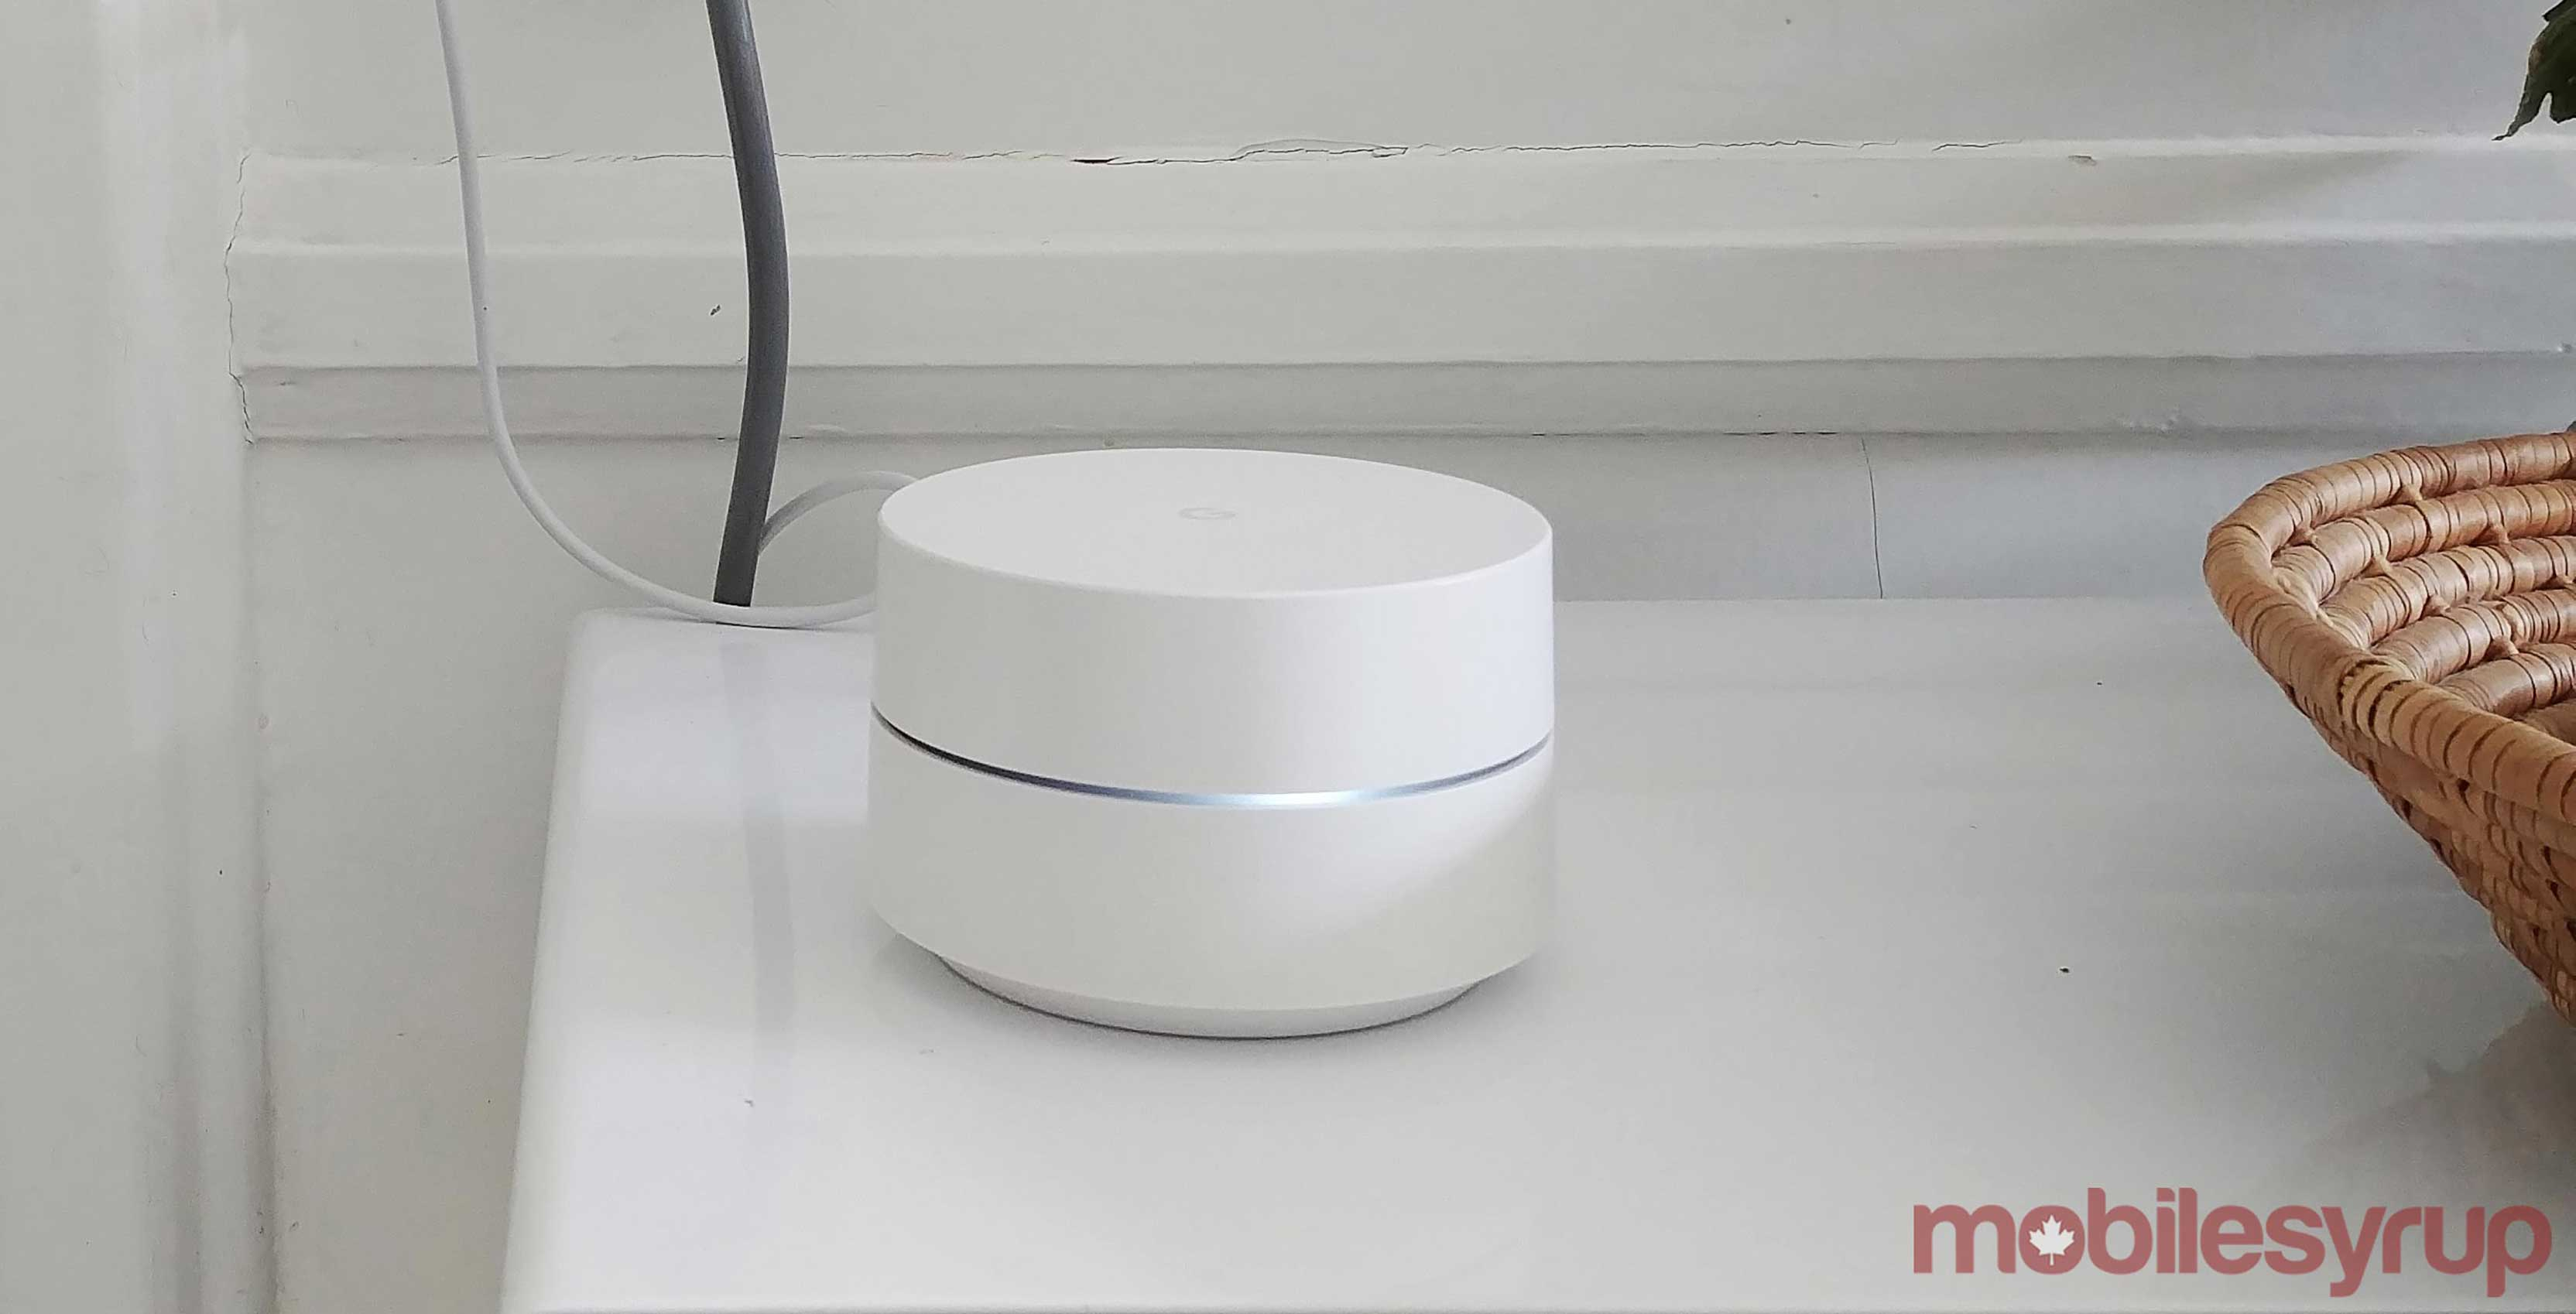 Google Wifi in kitchen